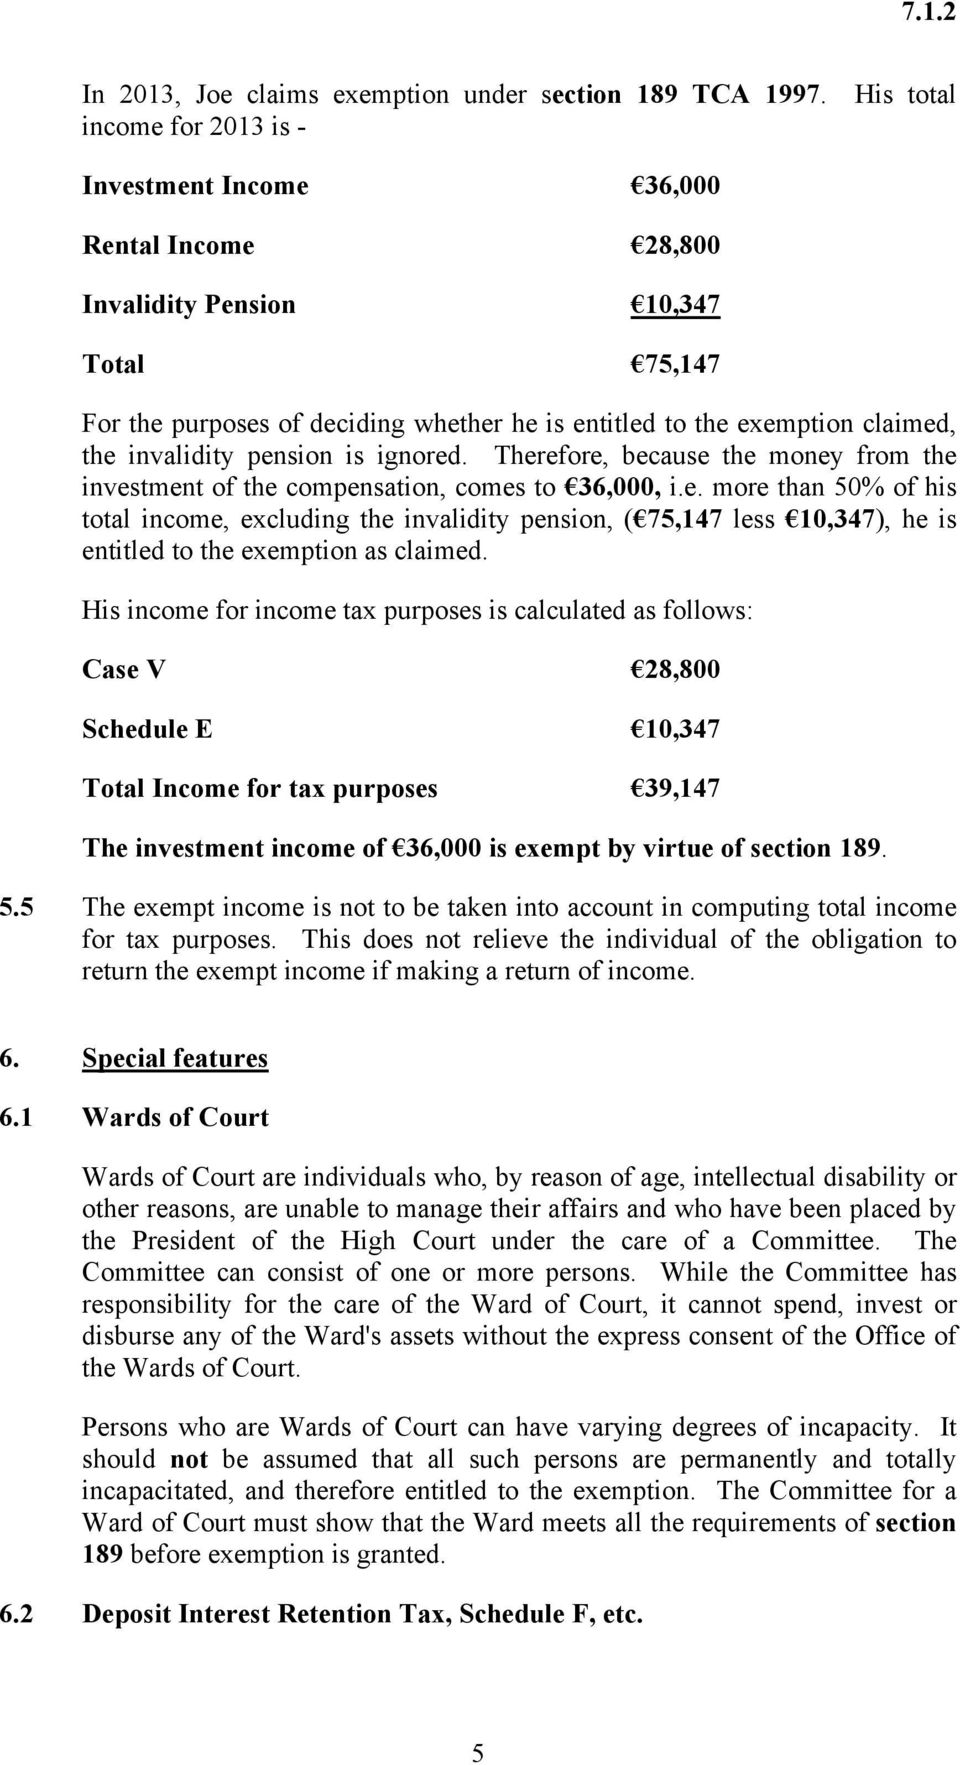 invalidity pension is ignored. Therefore, because the money from the investment of the compensation, comes to 36,000, i.e. more than 50% of his total income, excluding the invalidity pension, ( 75,147 less 10,347), he is entitled to the exemption as claimed.